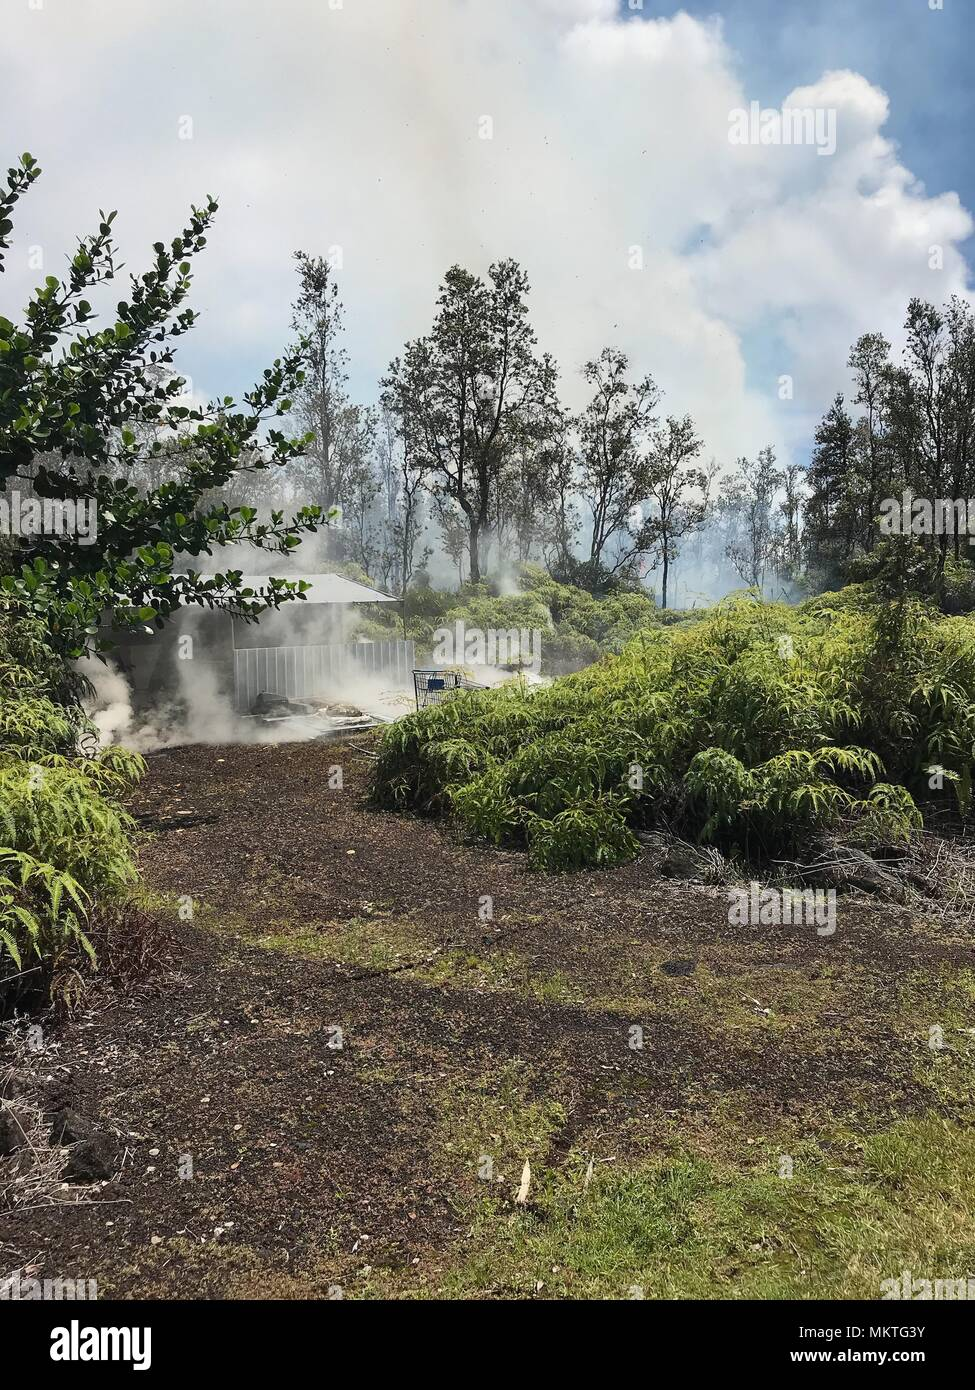 Steam and poison gases vent from Fissure 4 between Kaupili and Mohala Streets from the Kilauea volcanic eruption May 4, 2018 in Leilani Estates, Hawaii. The recent eruption continues destroying homes, forcing evacuations and spewing lava and poison gas on the Big Island of Hawaii. - Stock Image